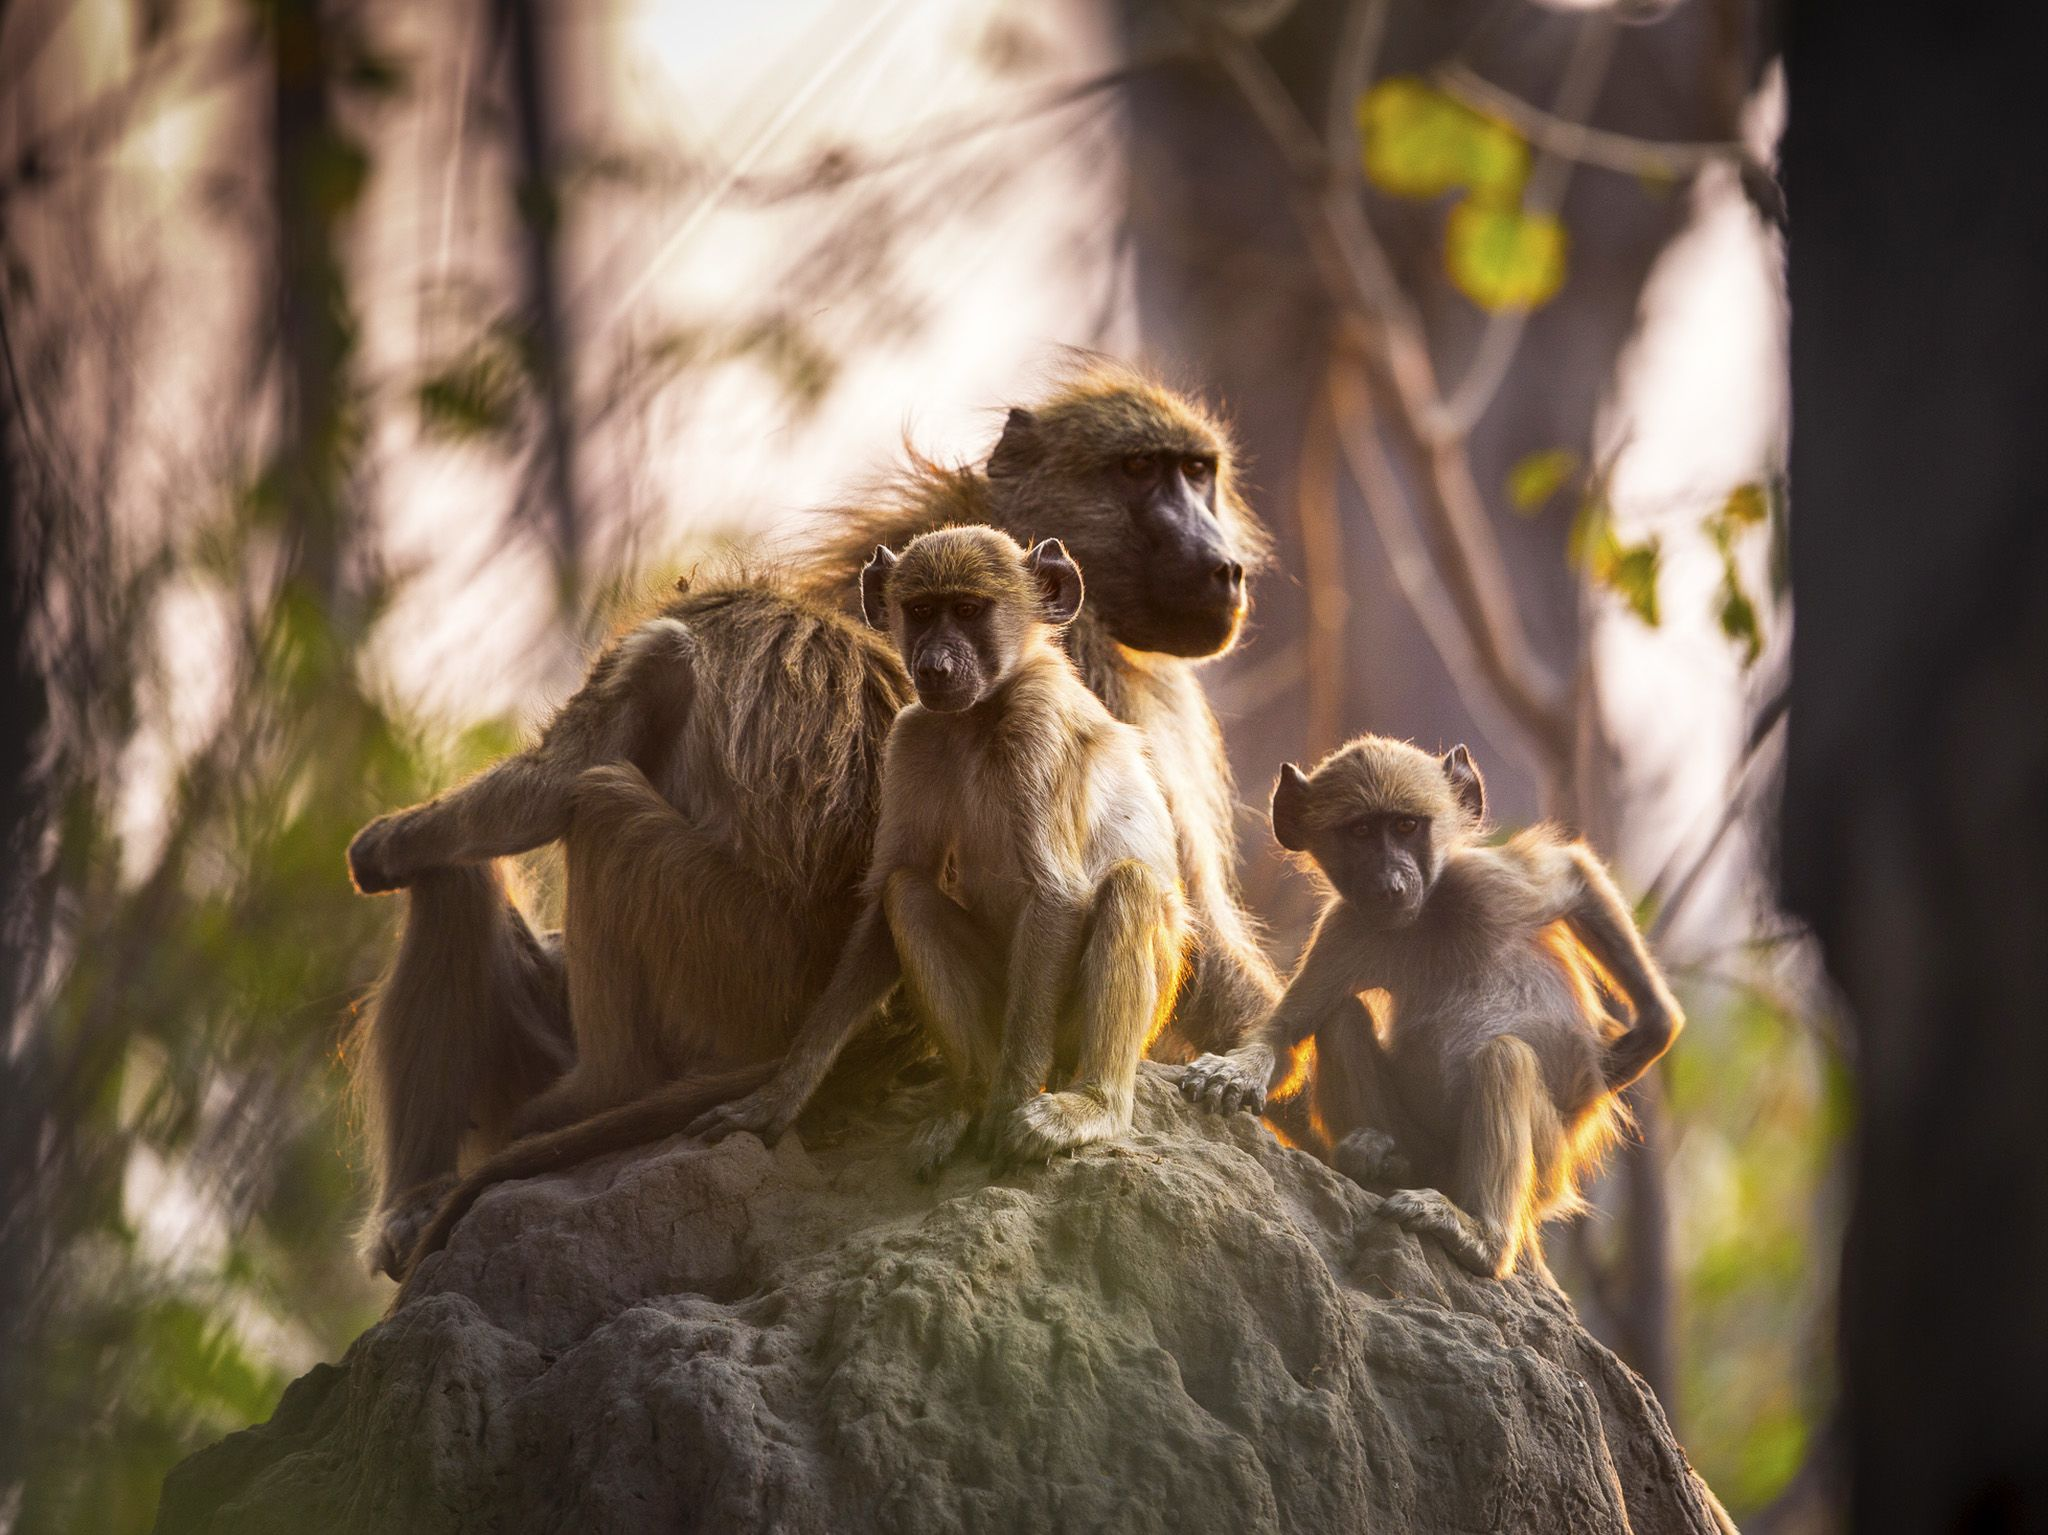 A family of baboons sit a top a termite mound with the last light of day approaching. Termites... [Photo of the day - November 2020]